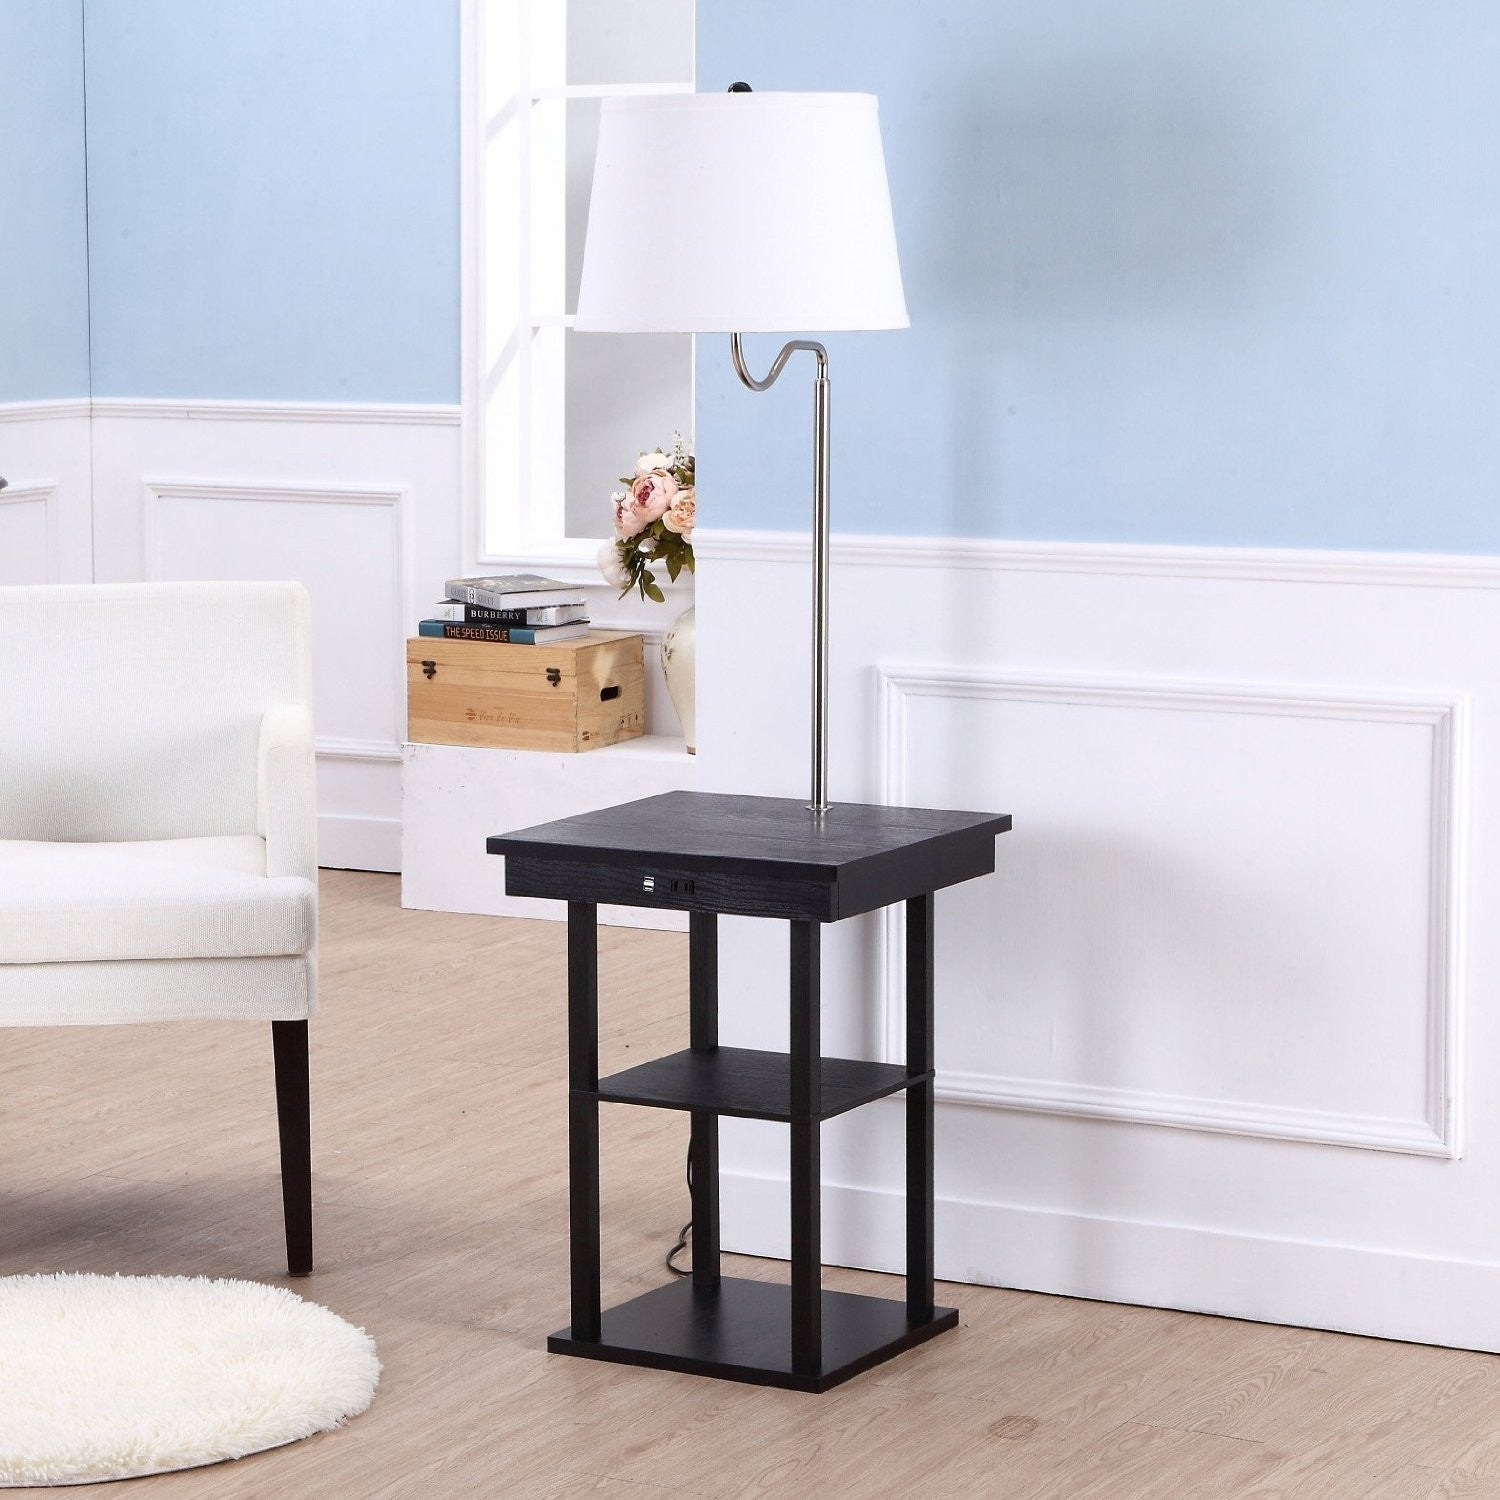 brightech store madison floor lamp with builtin twotier black table with open display space u2013 outfitted with 2 usb ports and us standard outlet for